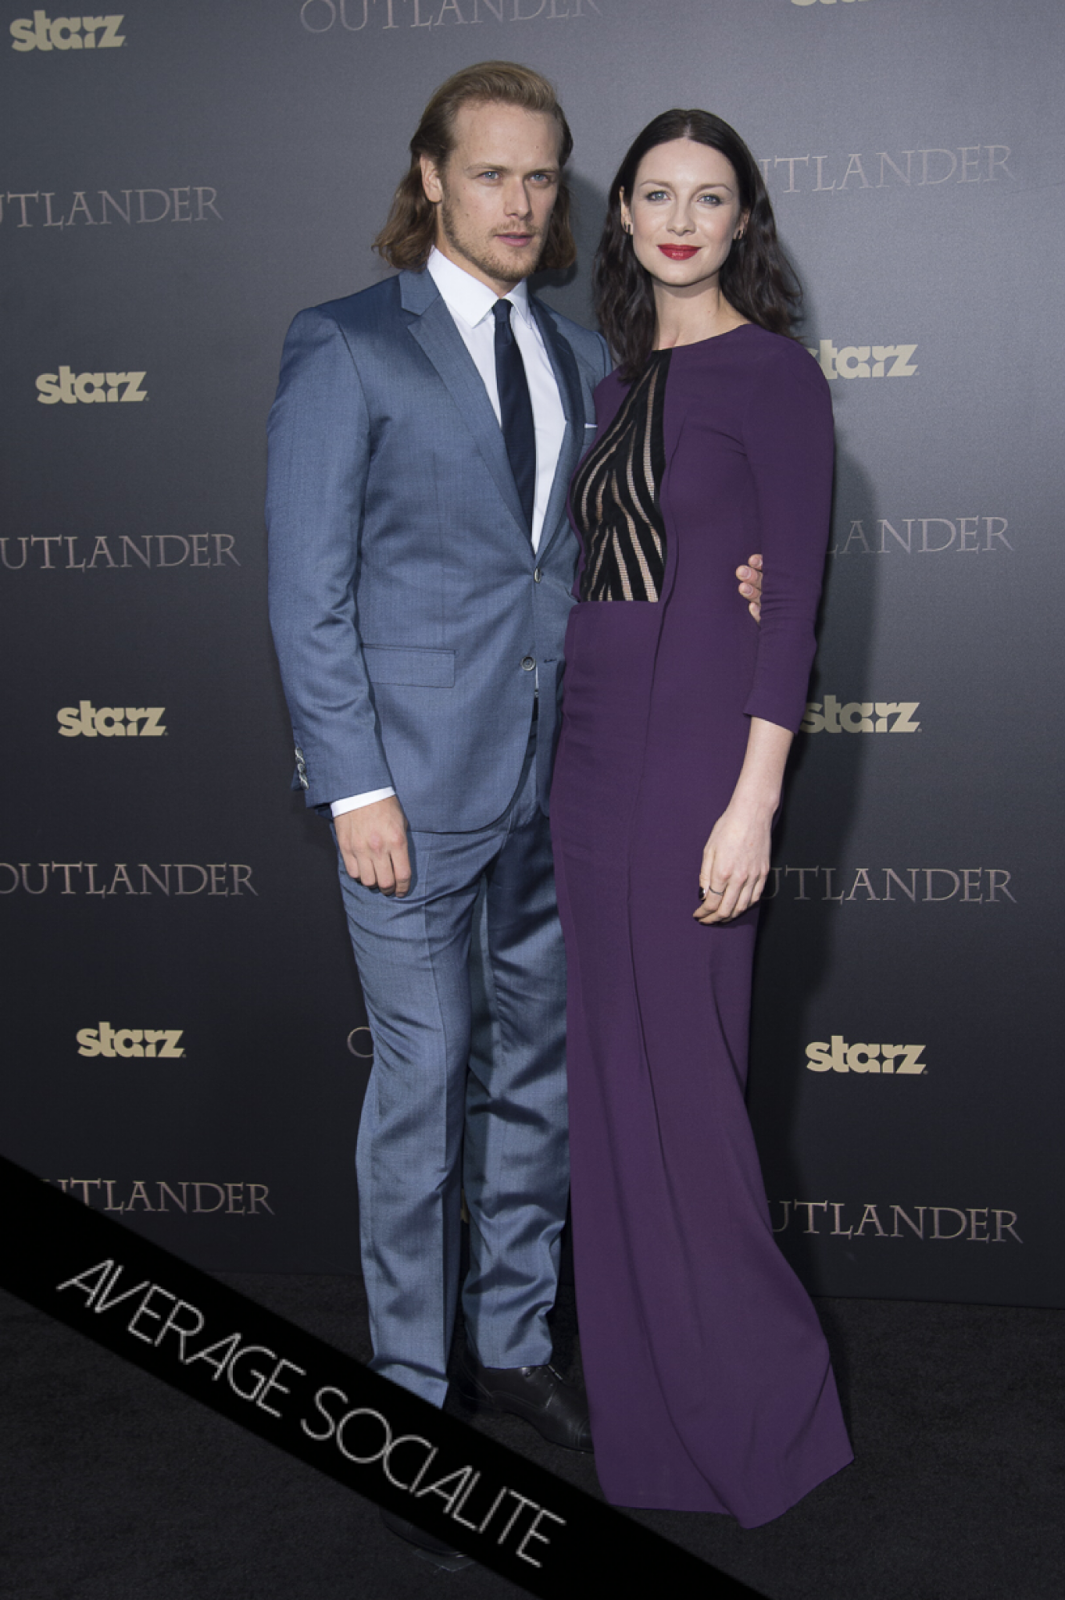 Are Outlander Stars Hookup In Tangible Life